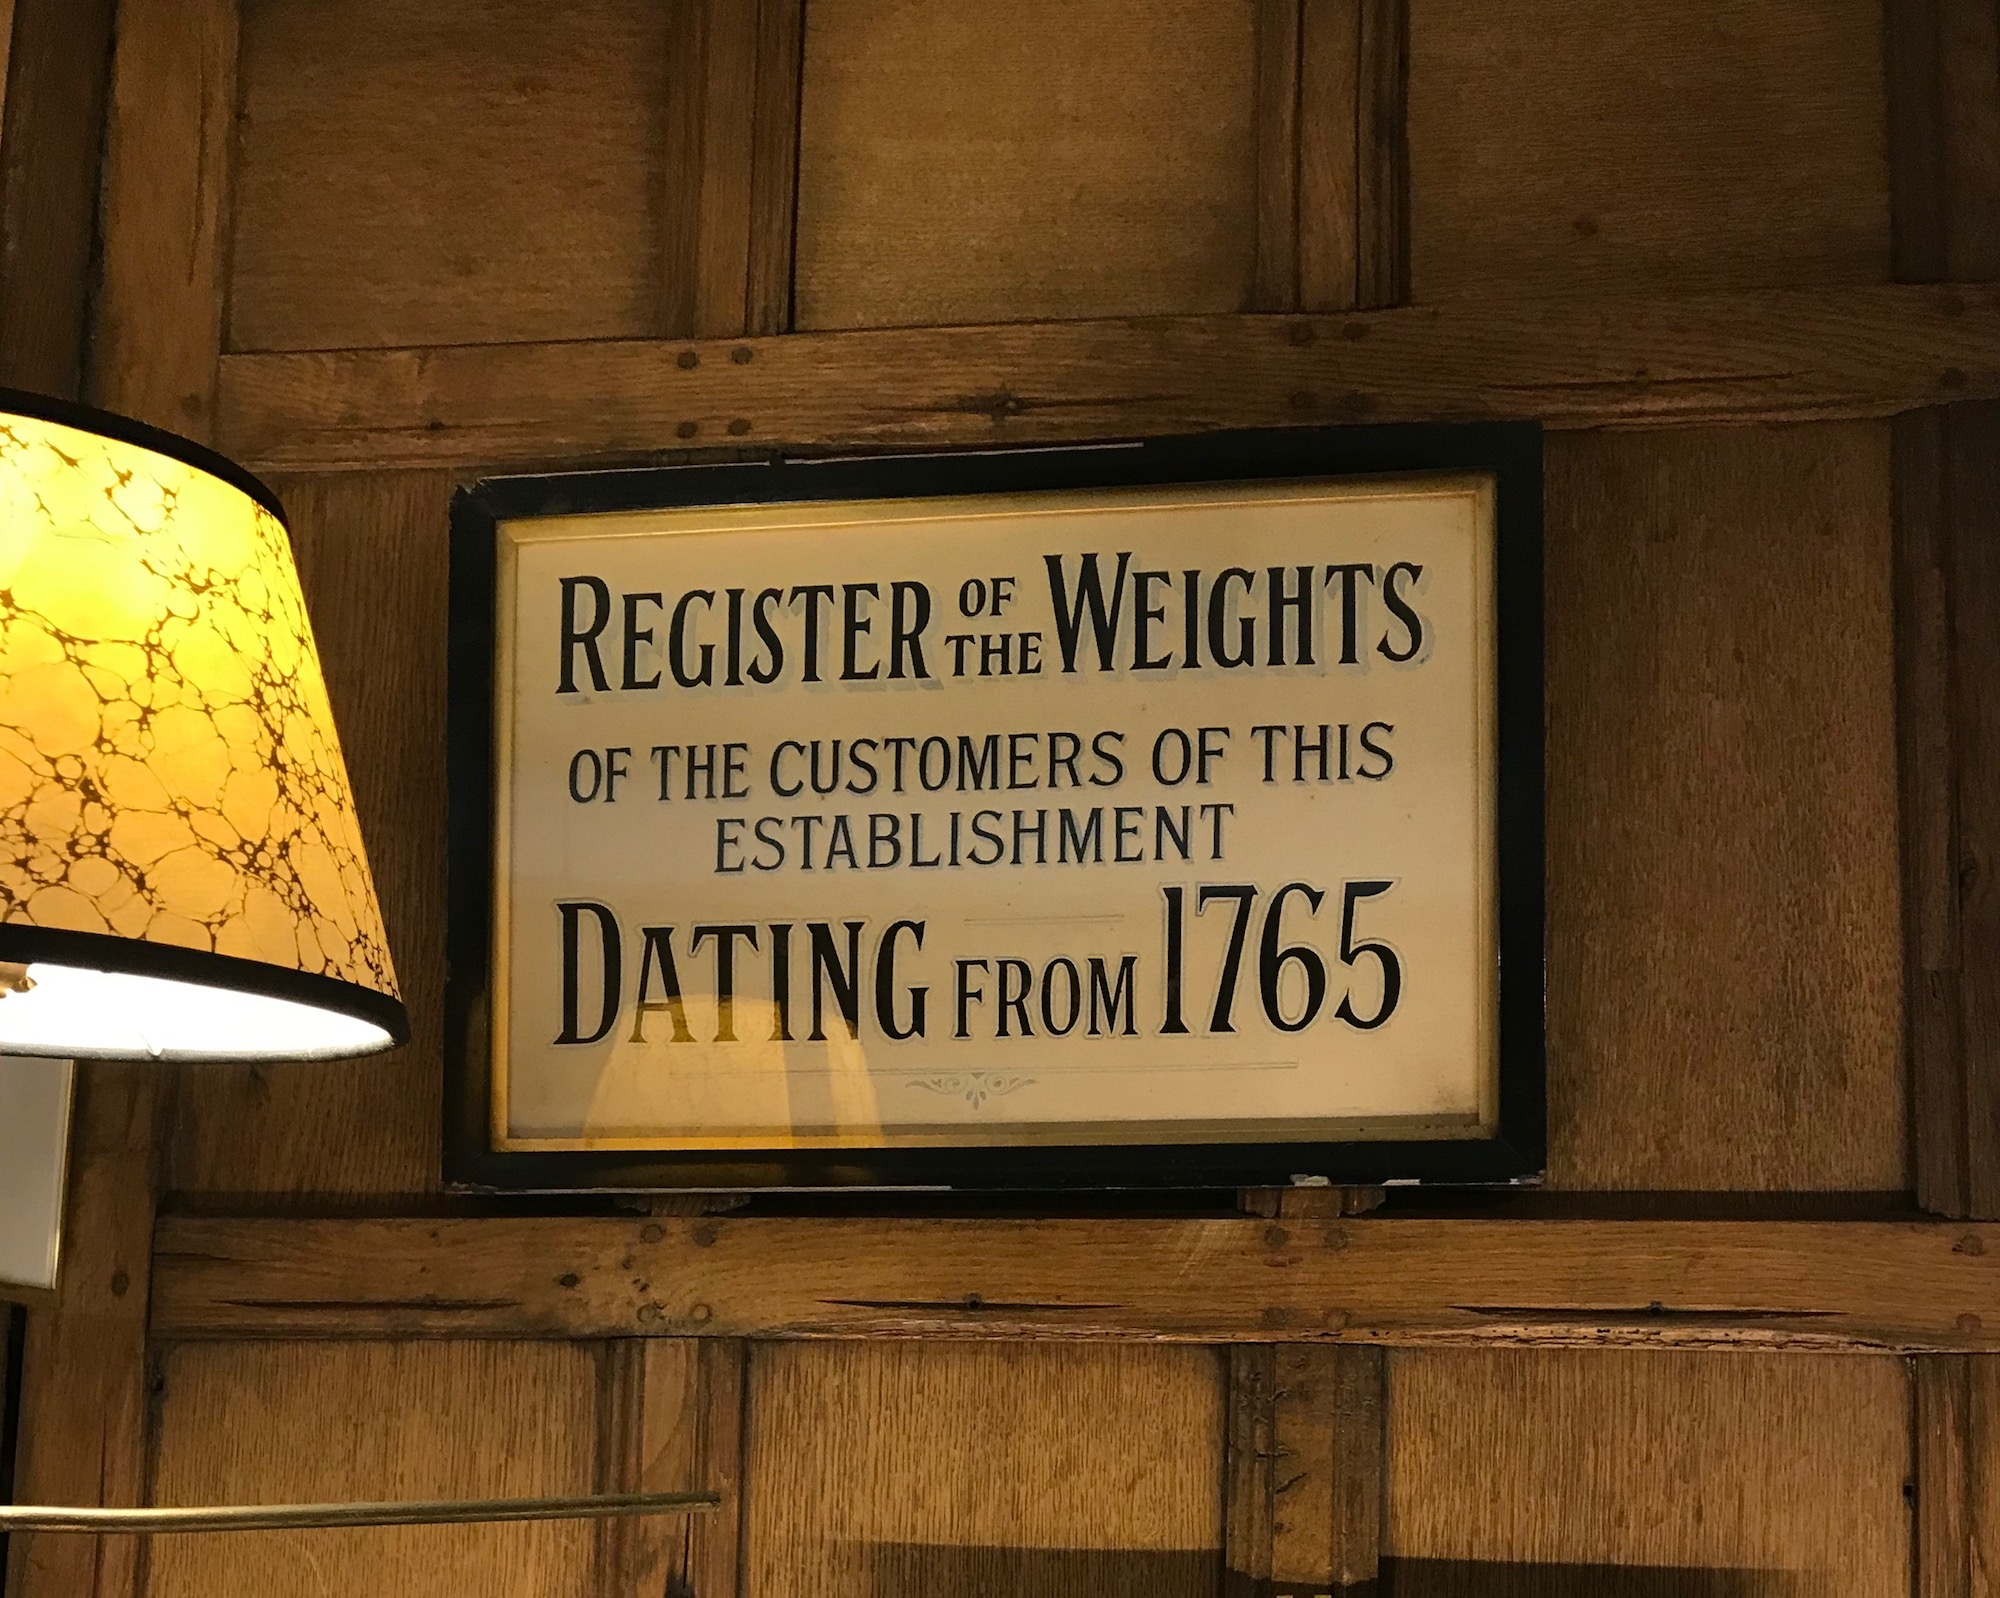 The practice of being weighed was fashionable among the British elite.  So not only could  you come in and buy wine but you could  step on those scales and have your weight recorded. Famous figures in the weighing books included Lord Byron, Beau Brummel and various royals.  You can still get weighed at Berry Bros. (nope, not a chance).